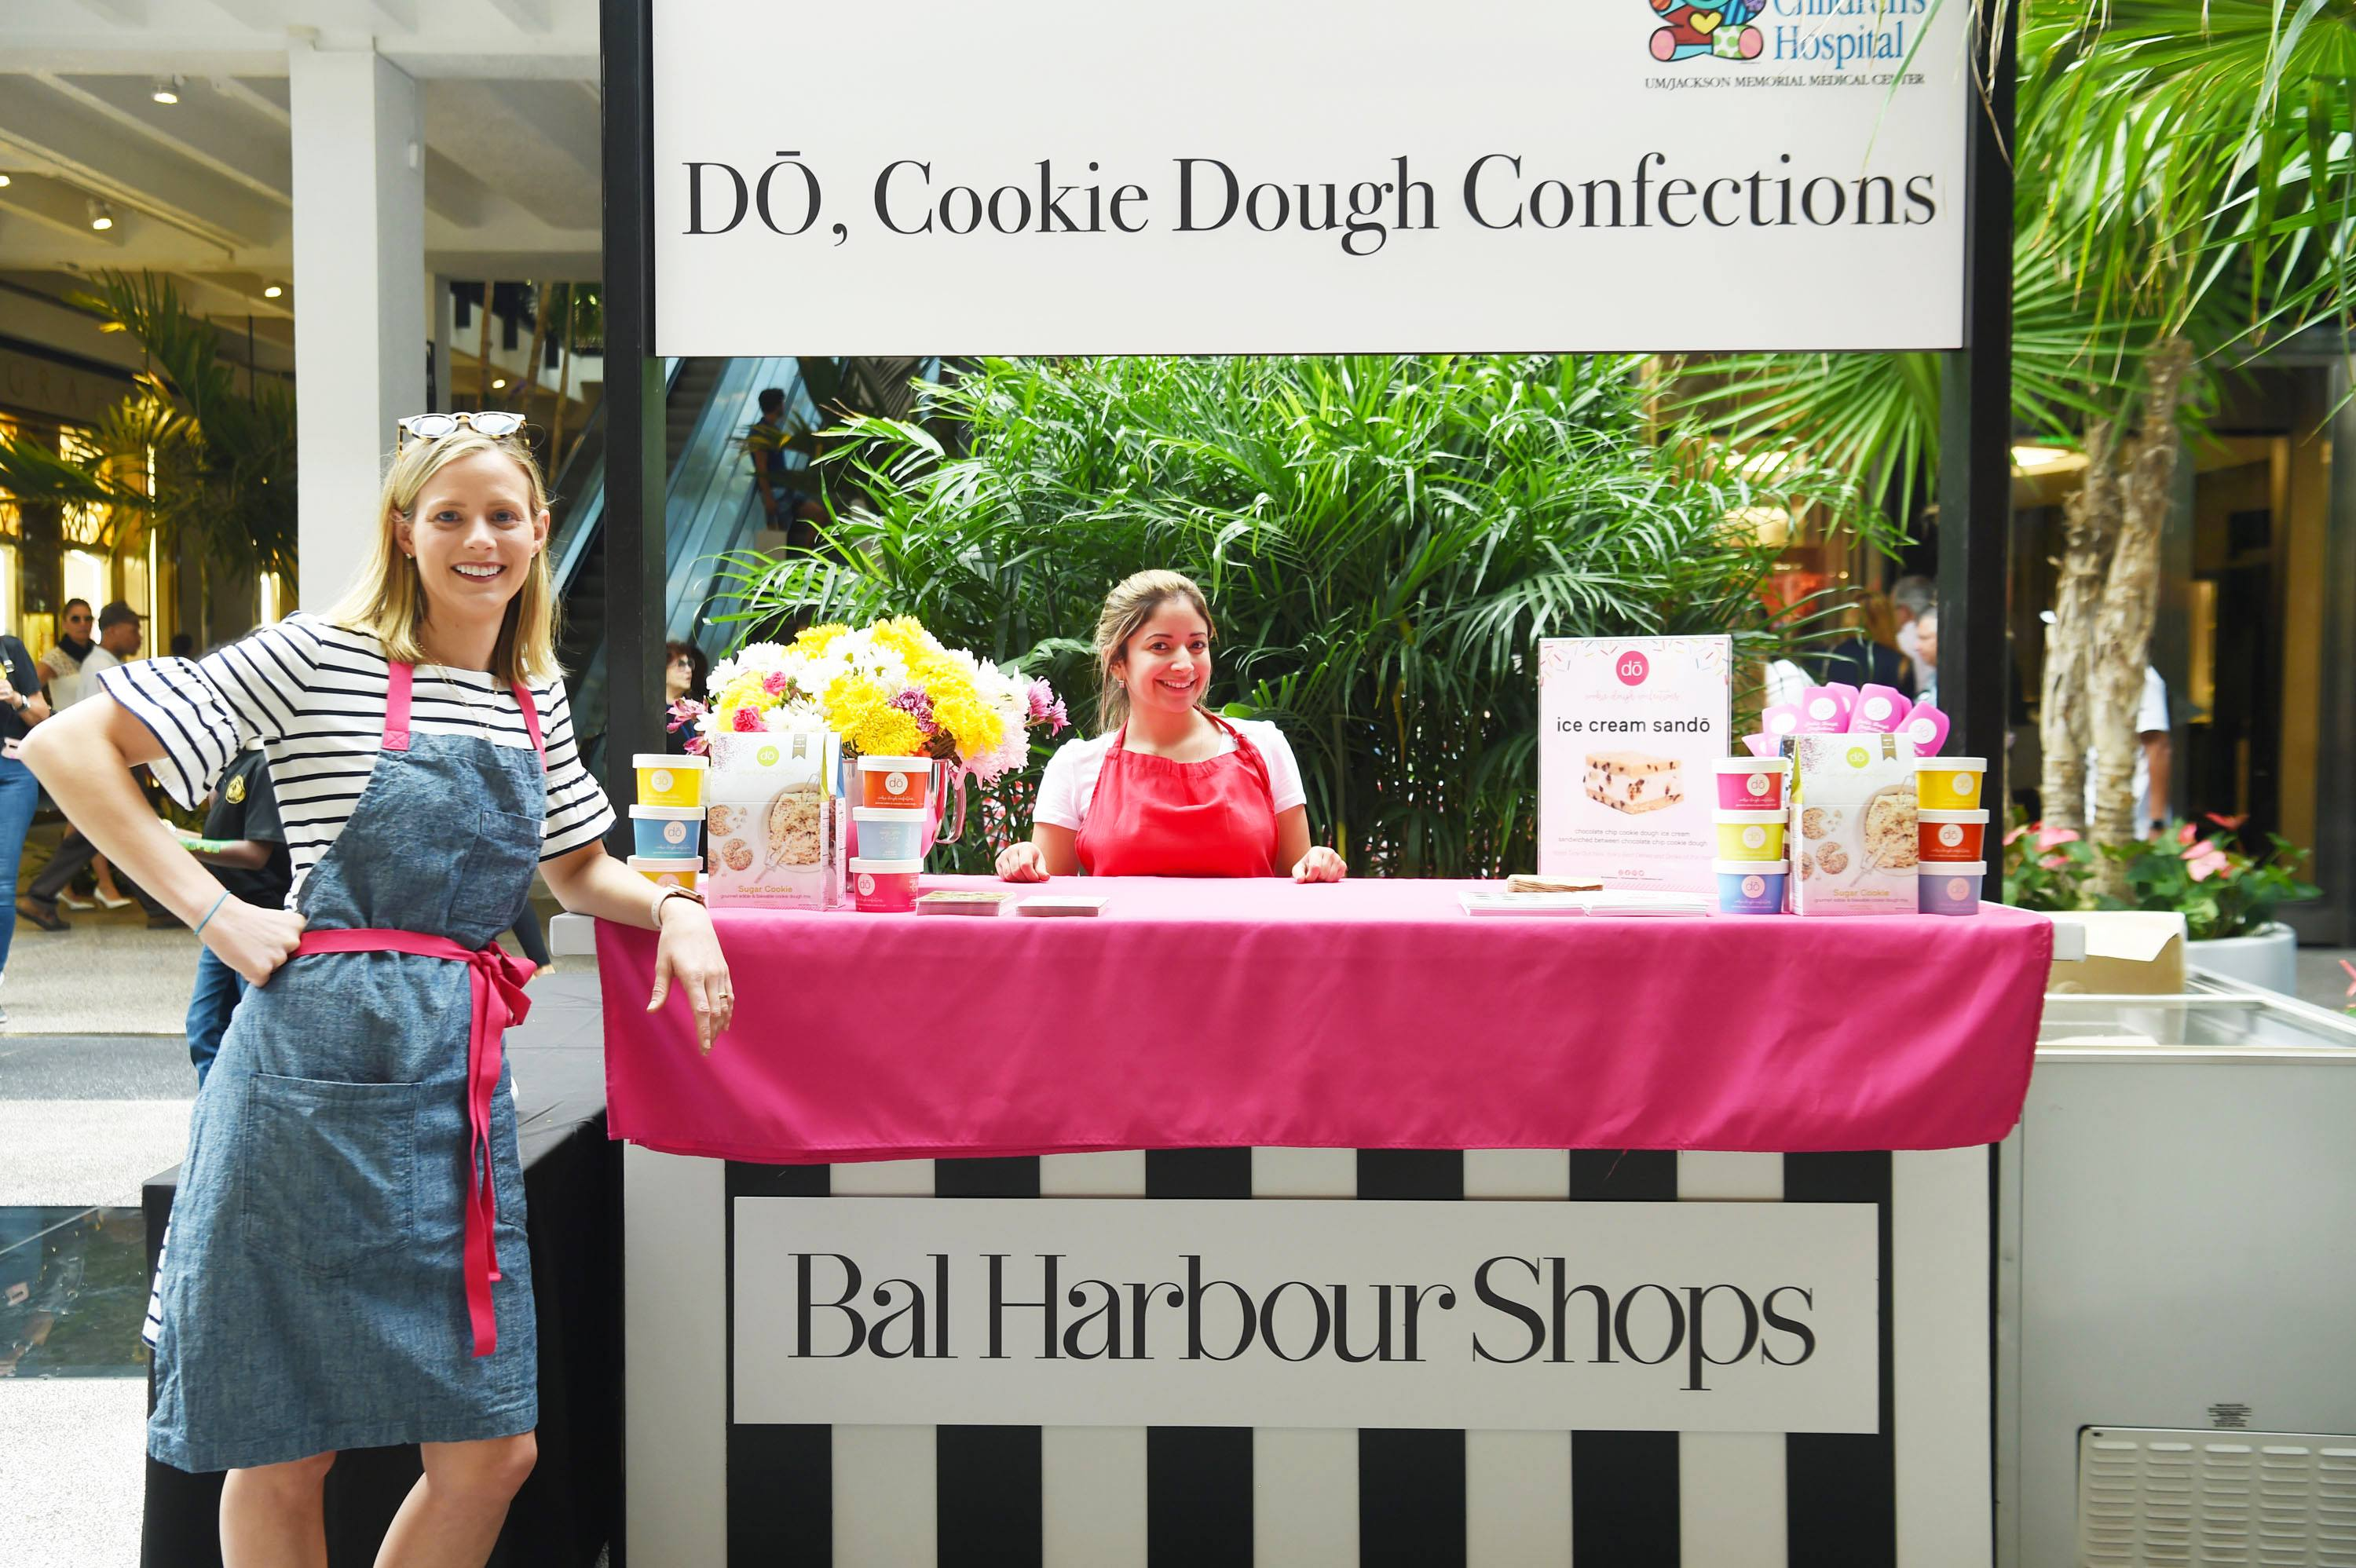 Founder of DŌ, Cookie Dough Confections, Kristen Tomlan served guests her signature Ice Cream SanDŌwich